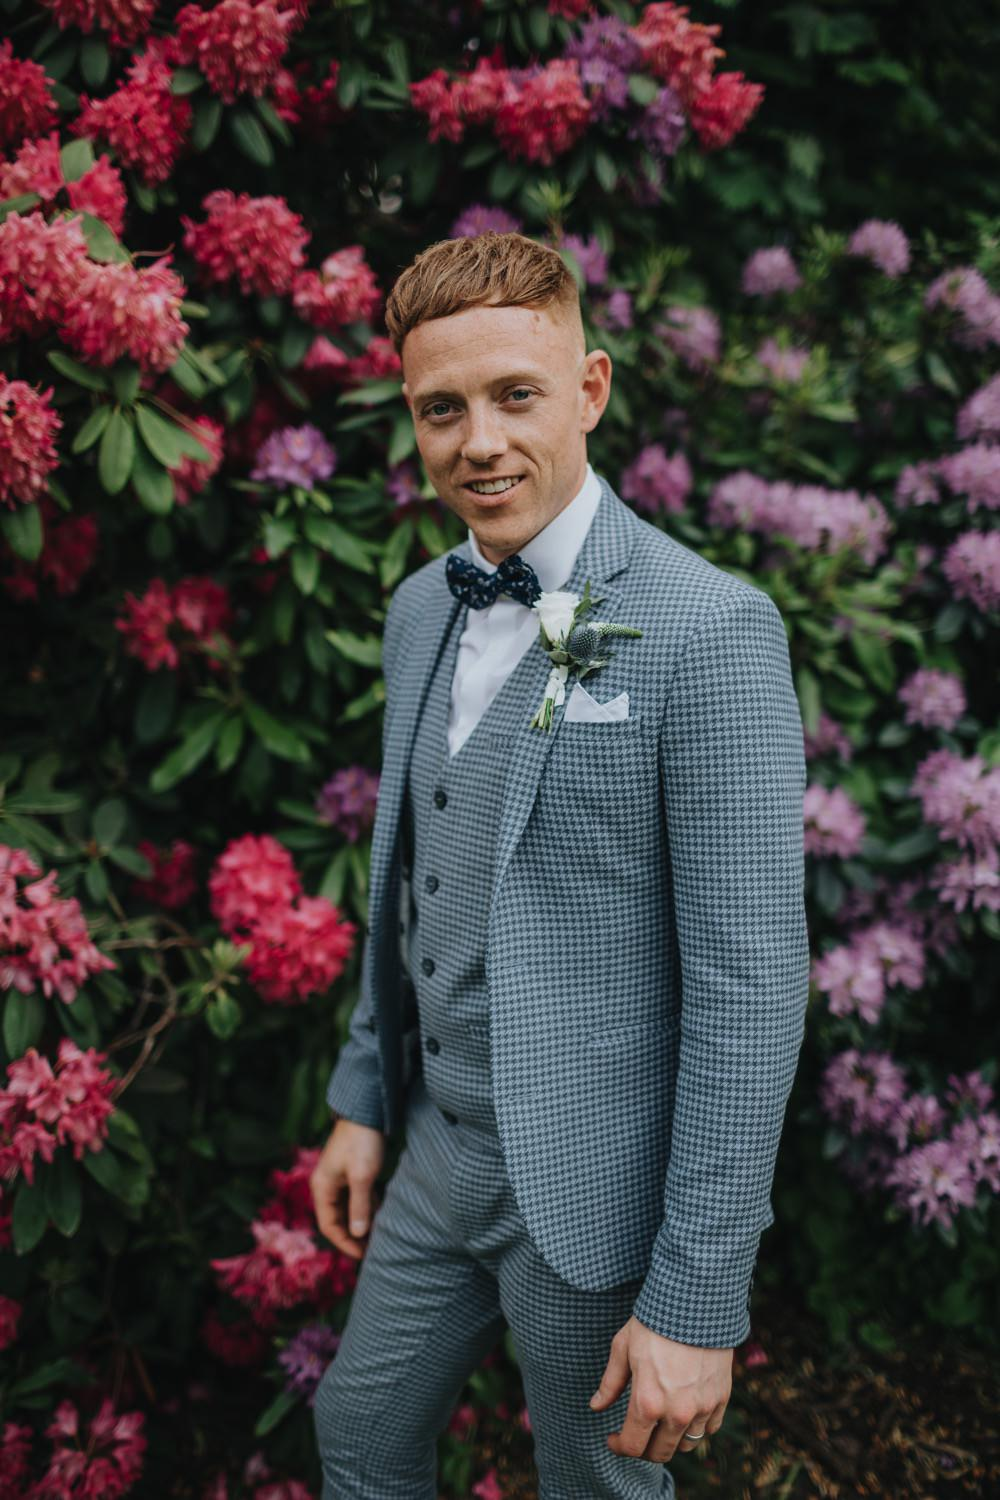 Sefton Park Wedding Bloom WeddingsGroom Suit Blue Bow Tie Check